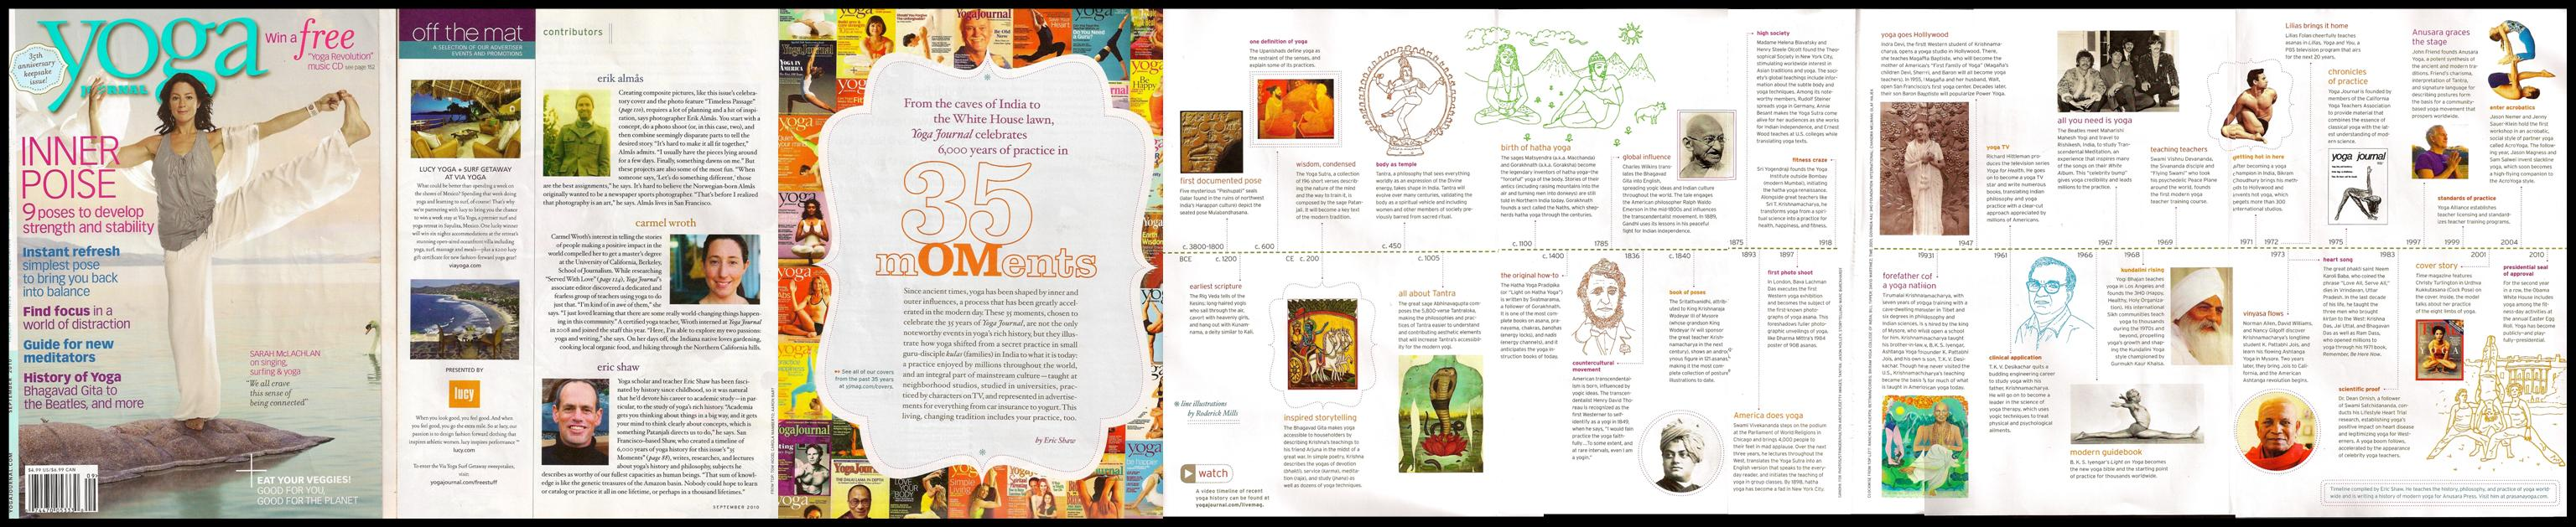 history of yoga essay Yoga originated thousands of years ago learn the history of yoga from its origins to modern day plus, overview of yoga elements and benefits.